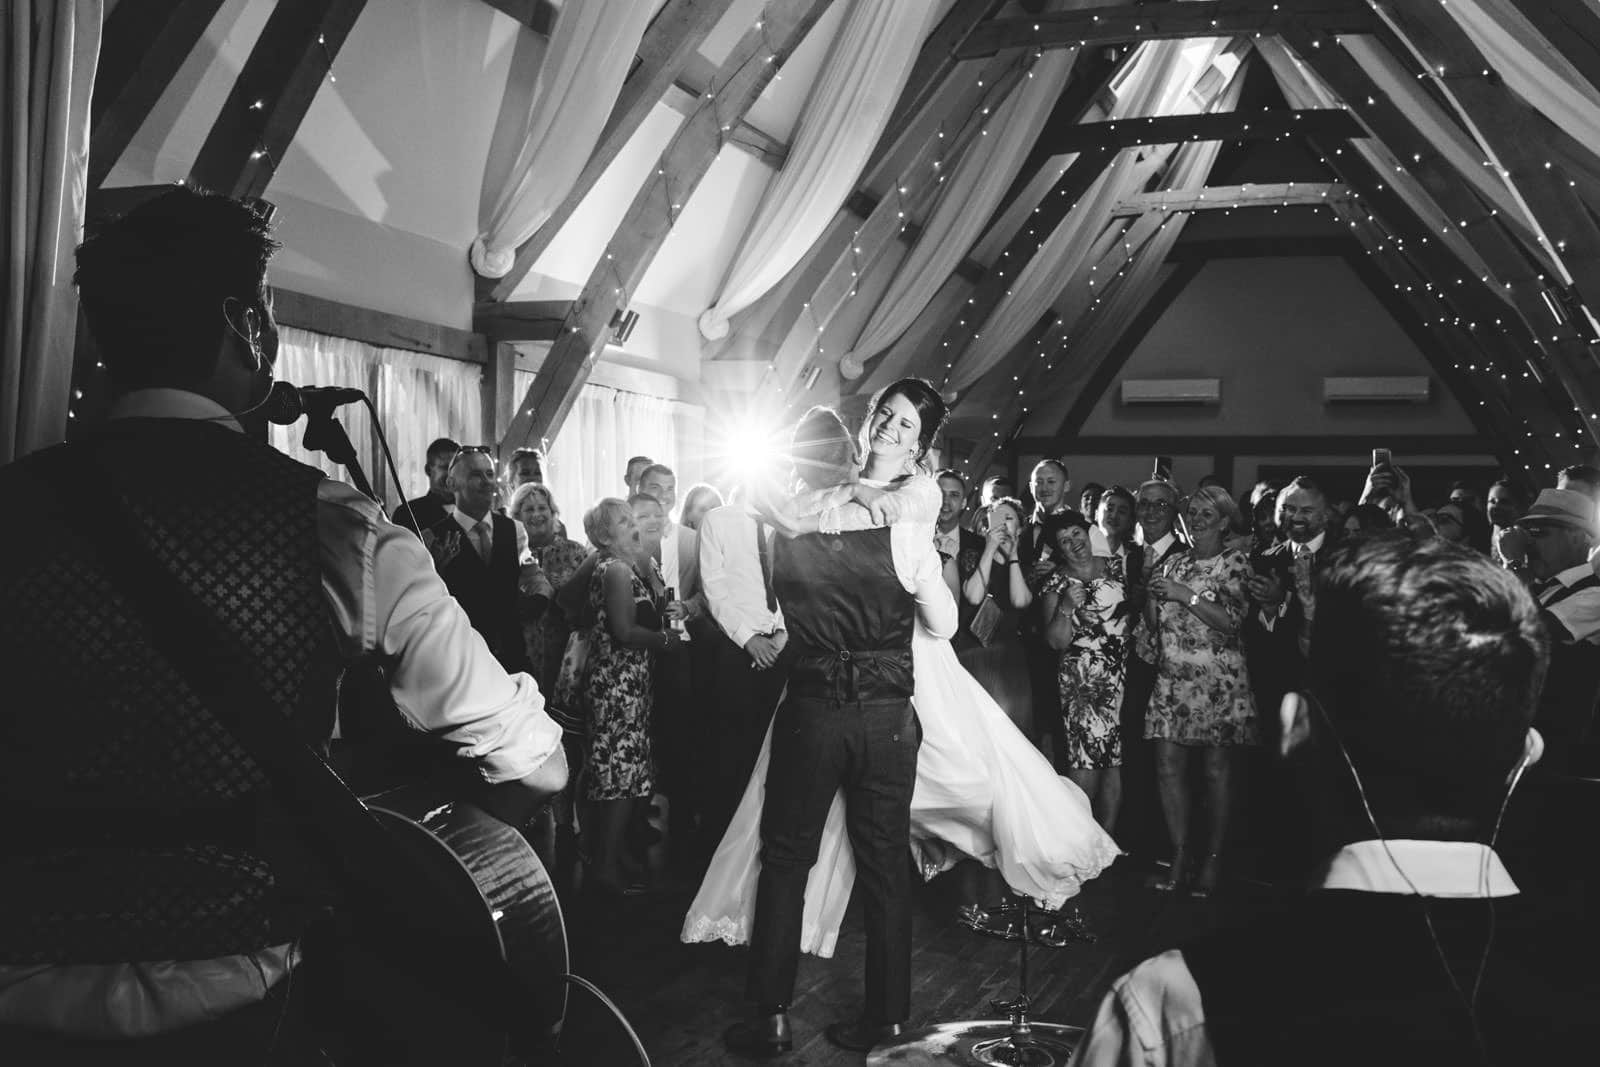 Beautiful first dance wedding photography moment as the bride is lifted up